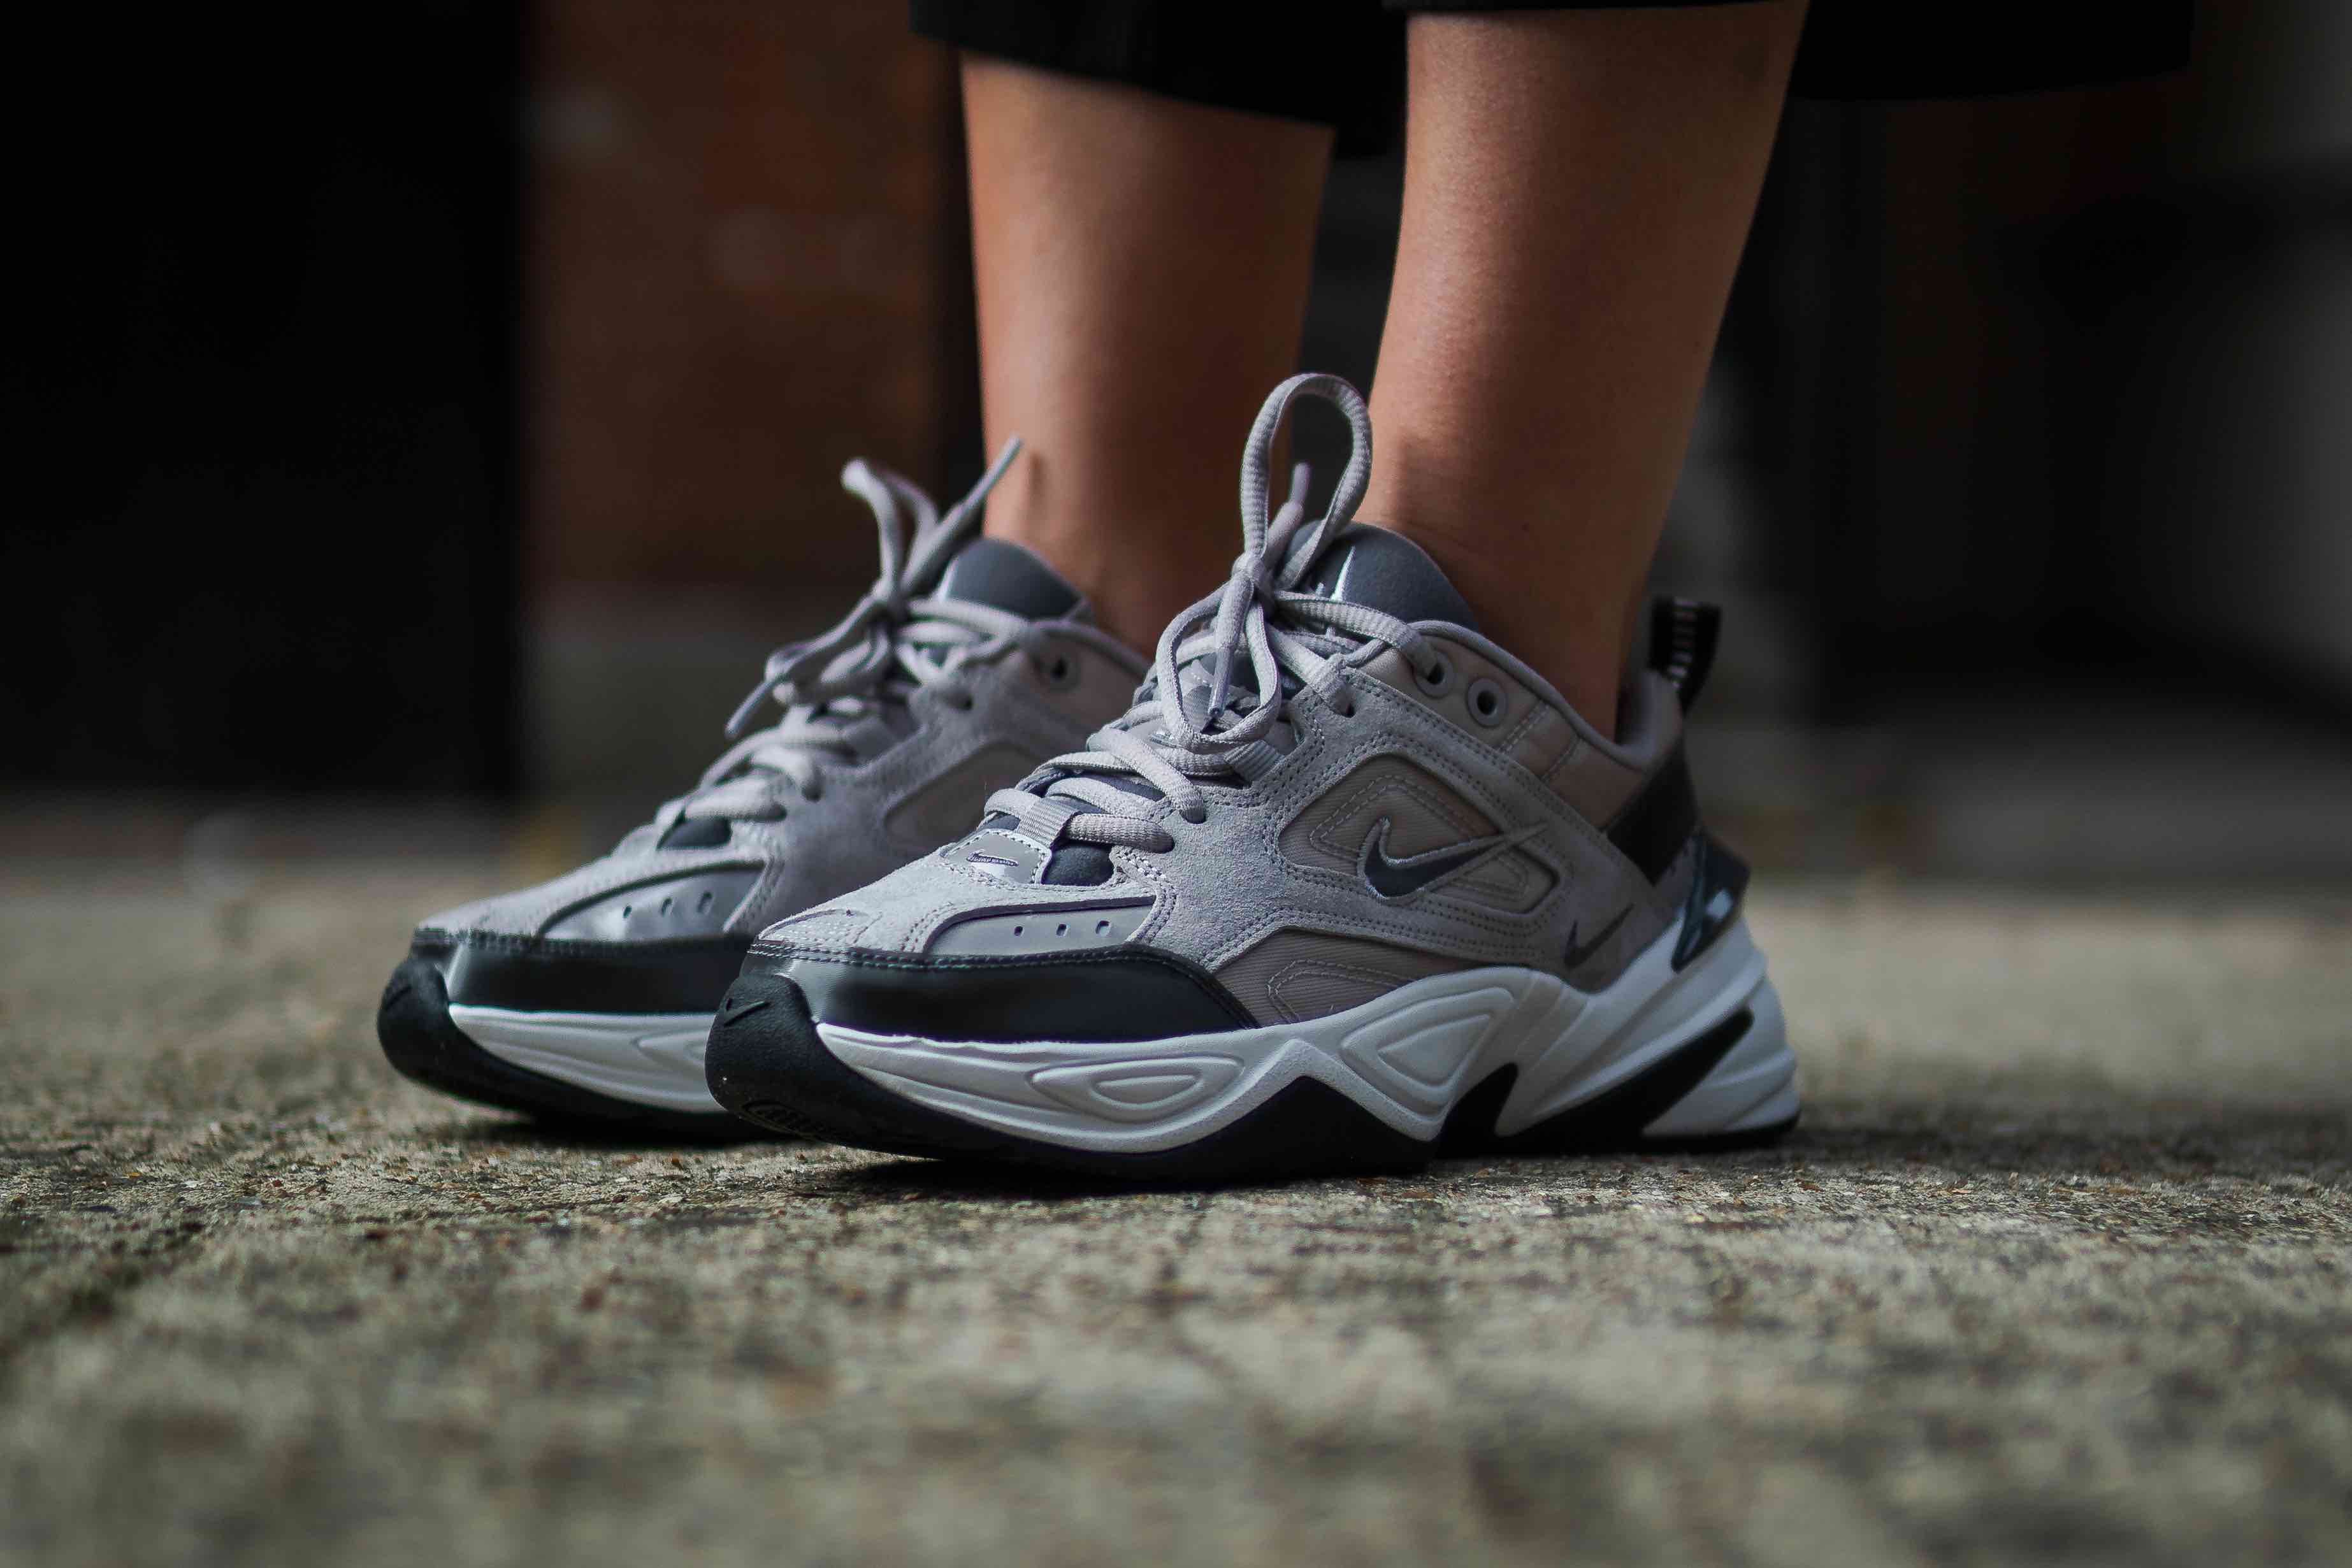 An Exclusive On Foot Look At The Nike M2K Tekno  Rich Clash   30f9669c9